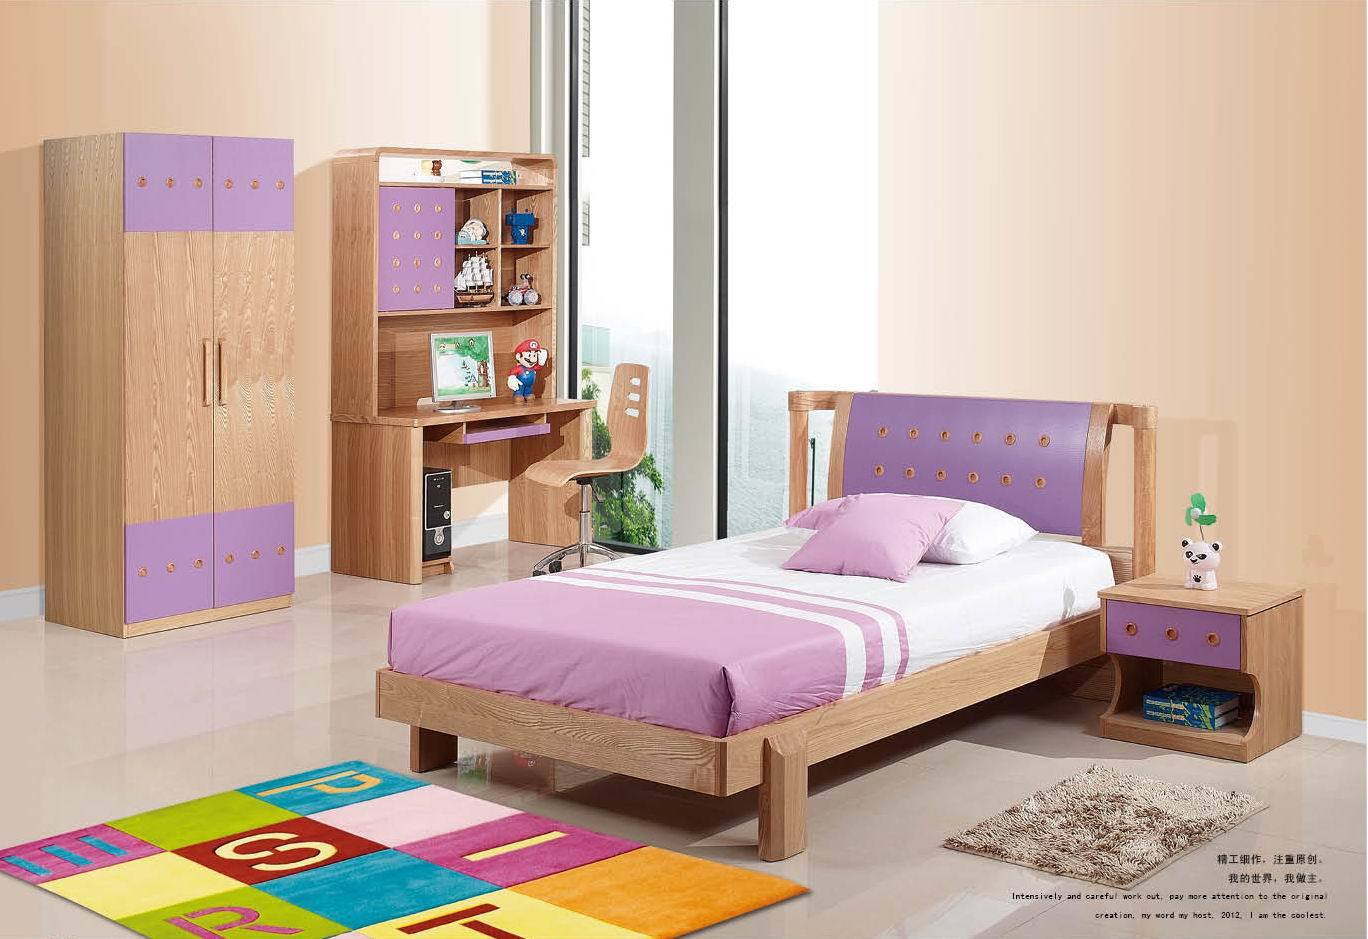 China Kids Bedroom Set (JKD-20130#) - China Kids Bedroom, Kids ...